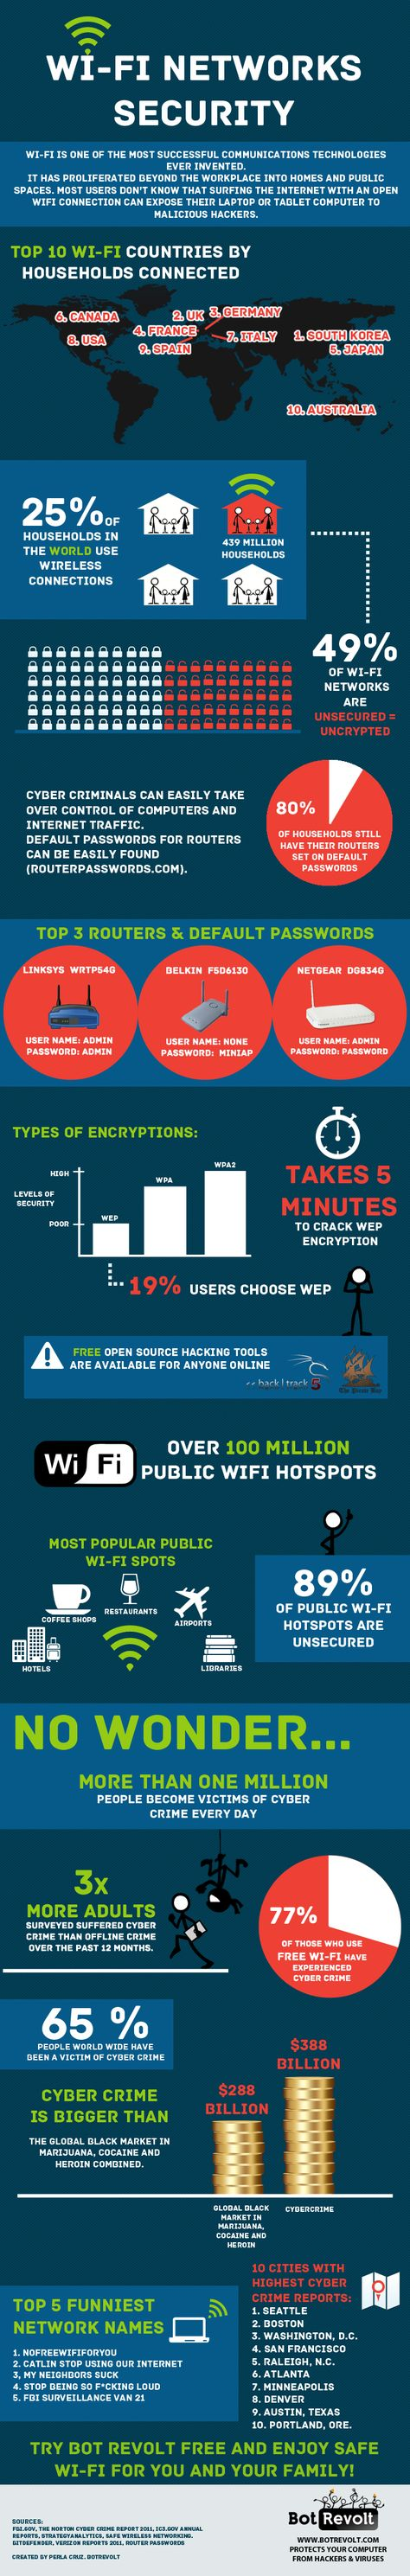 WIFI Networks Security [INFOGRAPHIC]